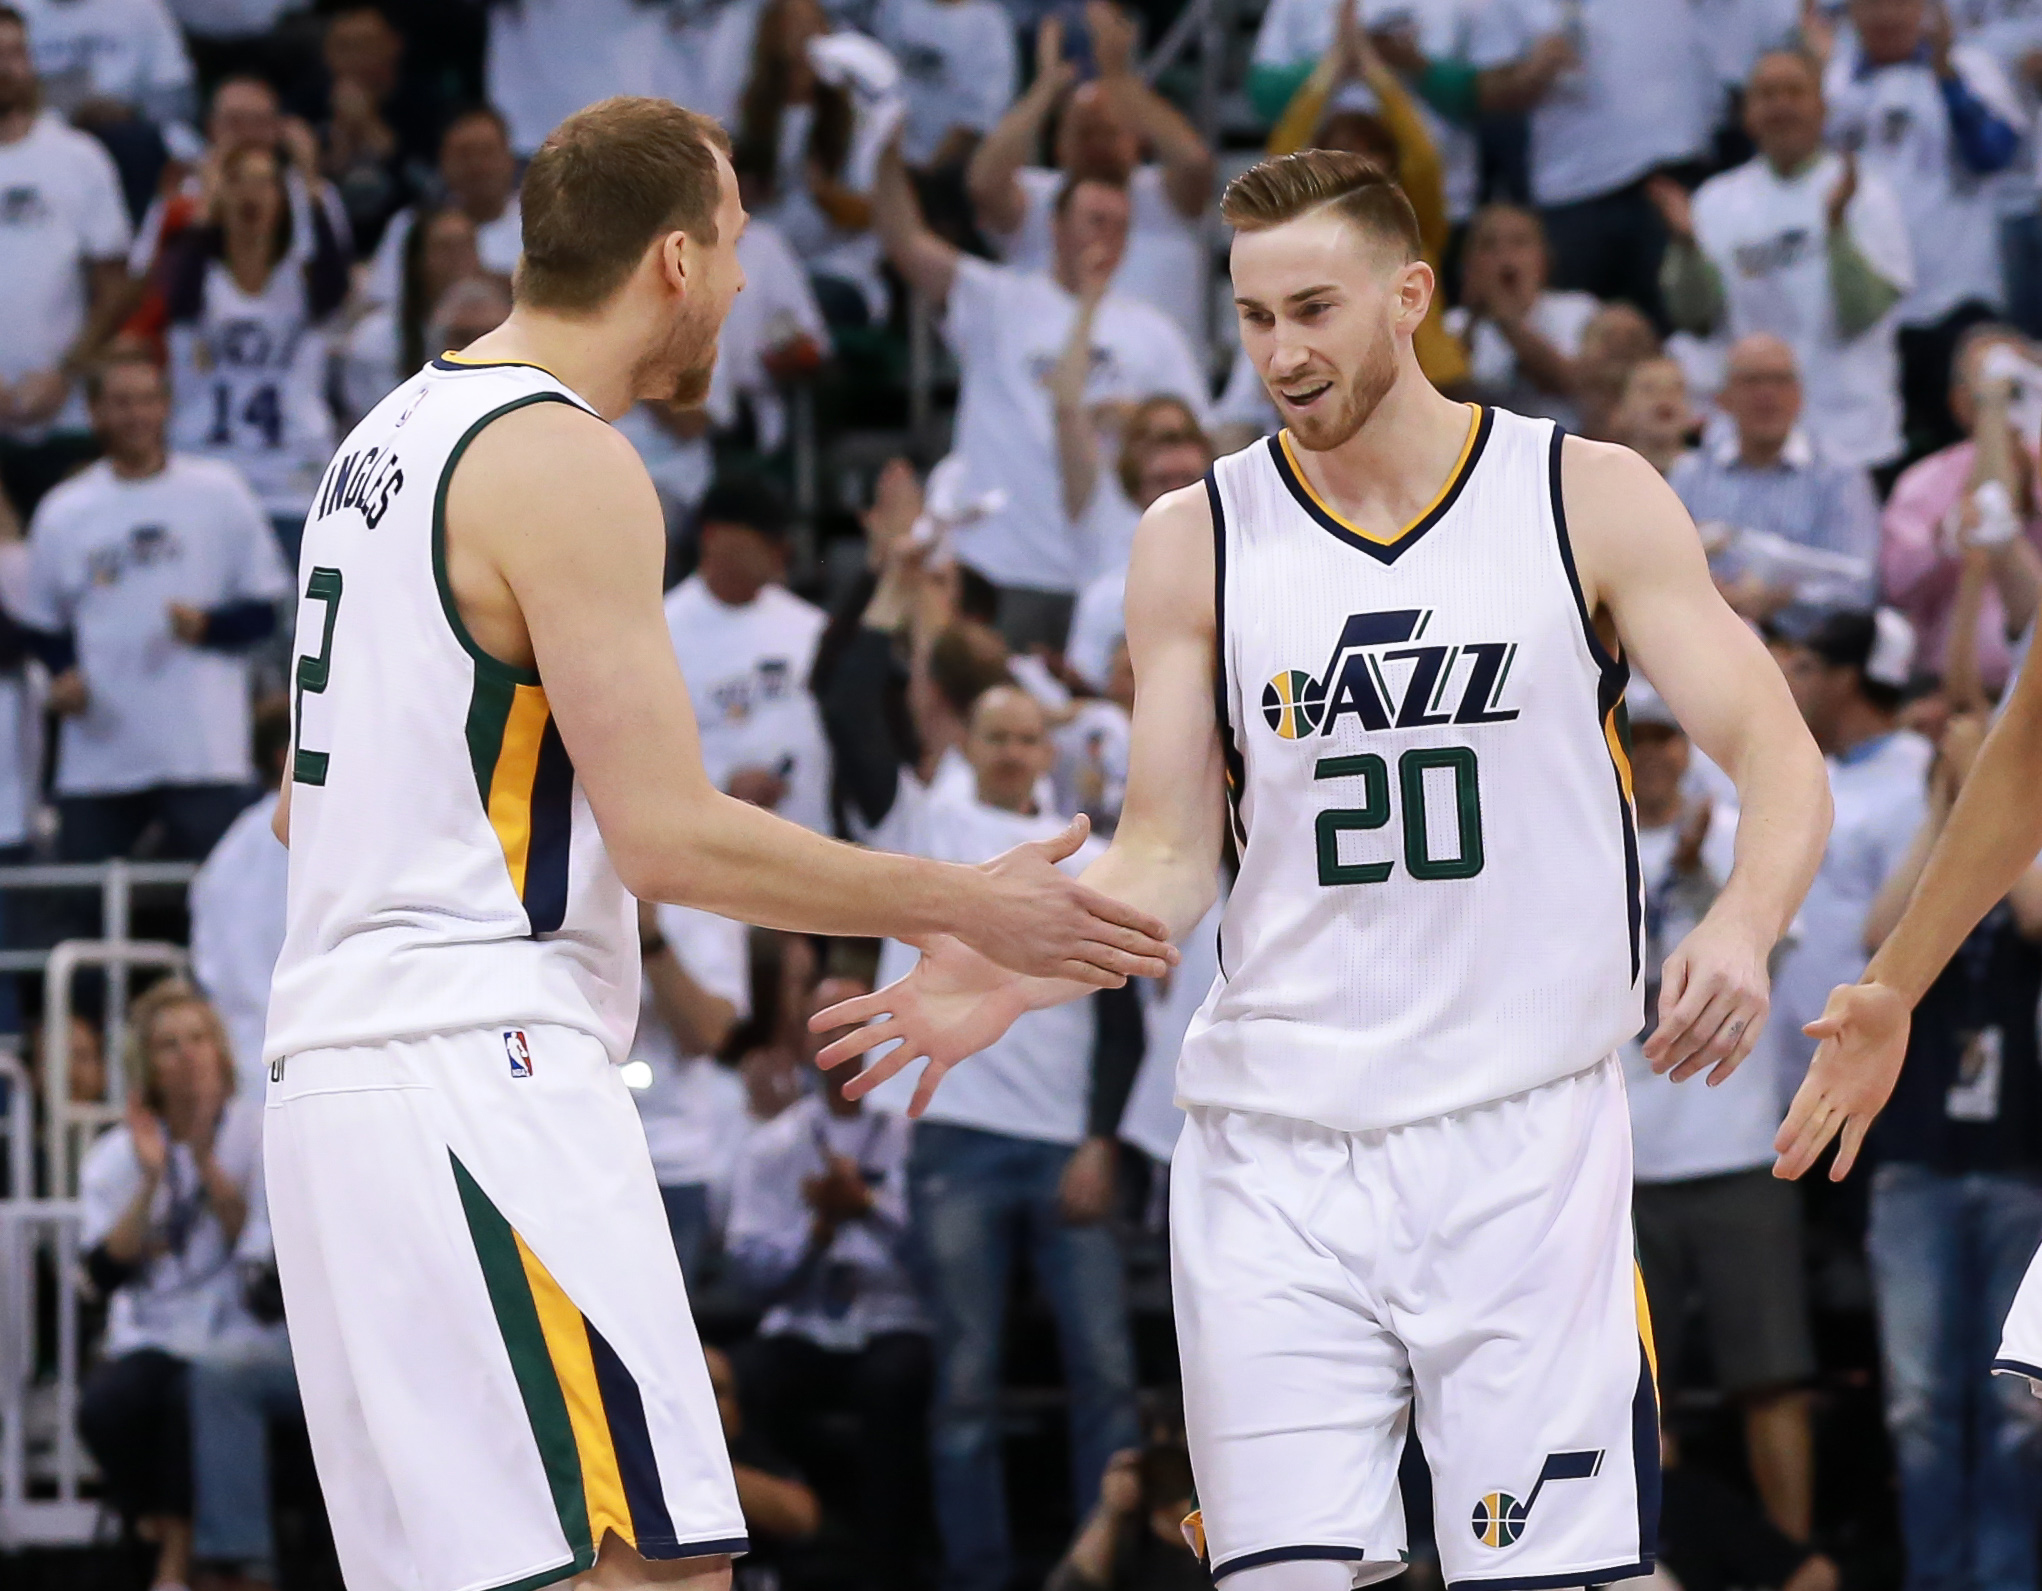 10035216-nba-playoffs-los-angeles-clippers-at-utah-jazz